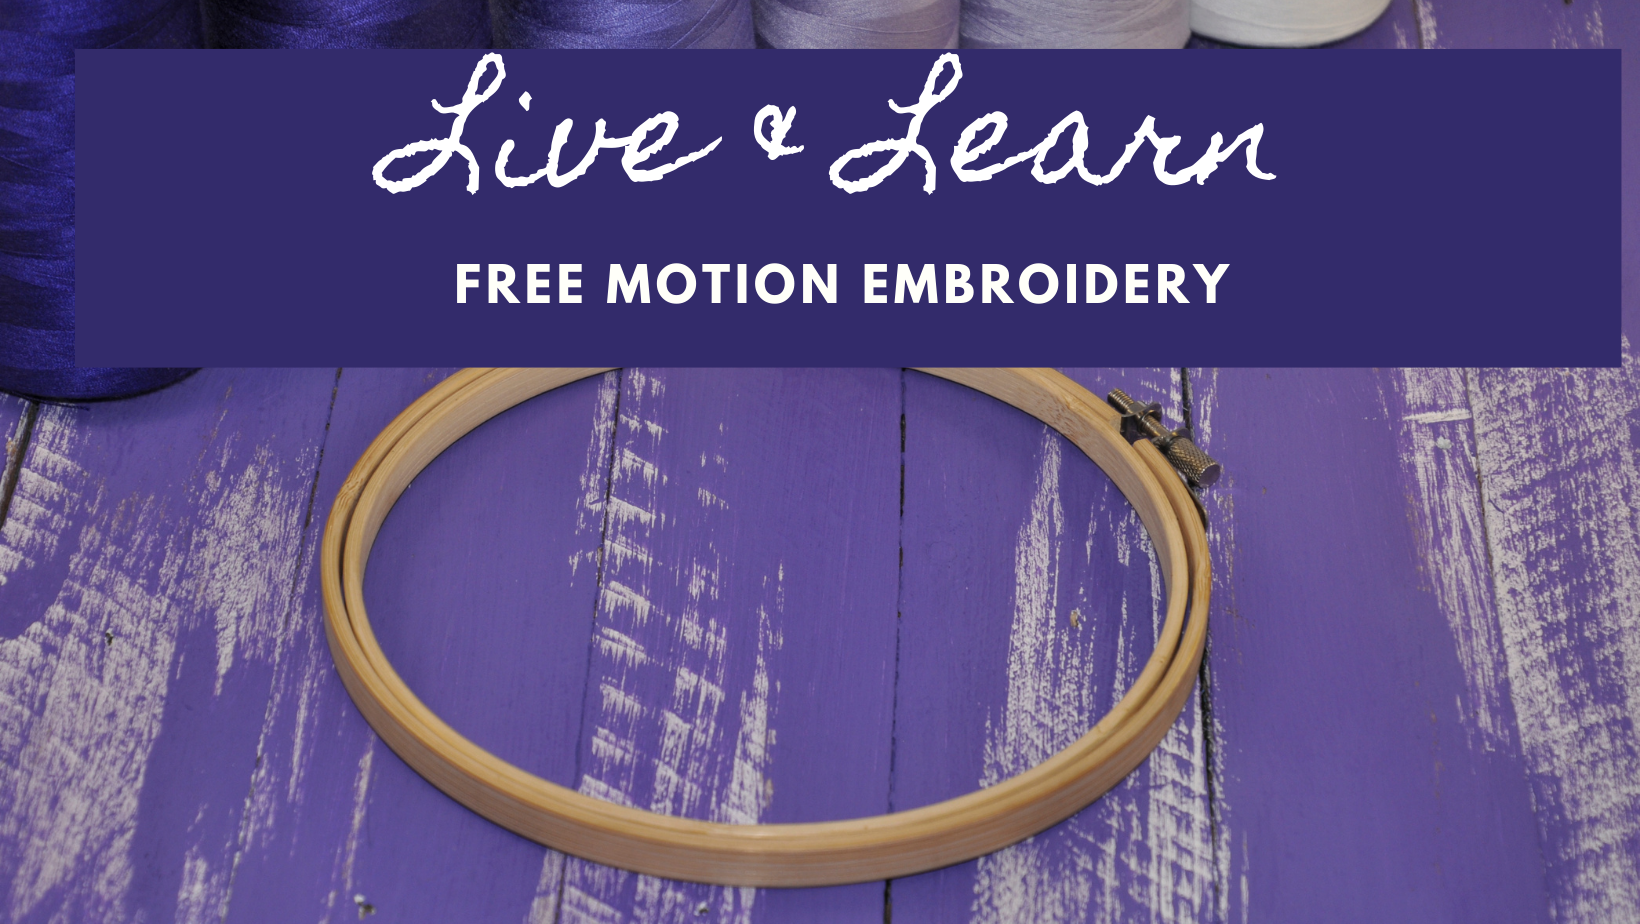 LIVE & Learn Event: Free Motion Embroidery